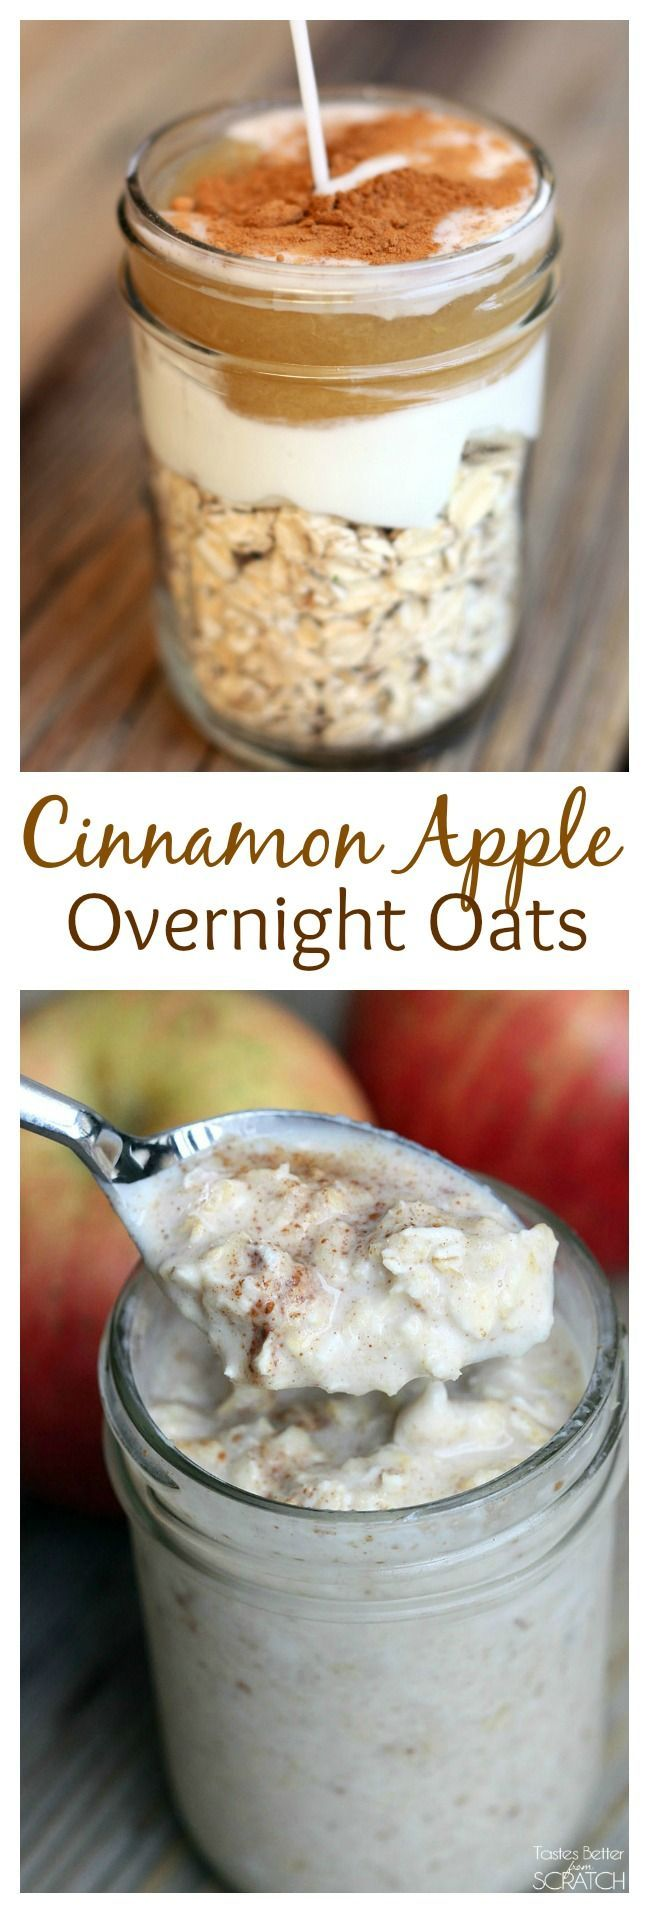 Cinnamon Apple Overnight Oats the easiest, healthy breakfast! Mix the ingredients the night before and it's ready to go by morning! My kids LOVE this! Recipe on MyRecipeMagic.com